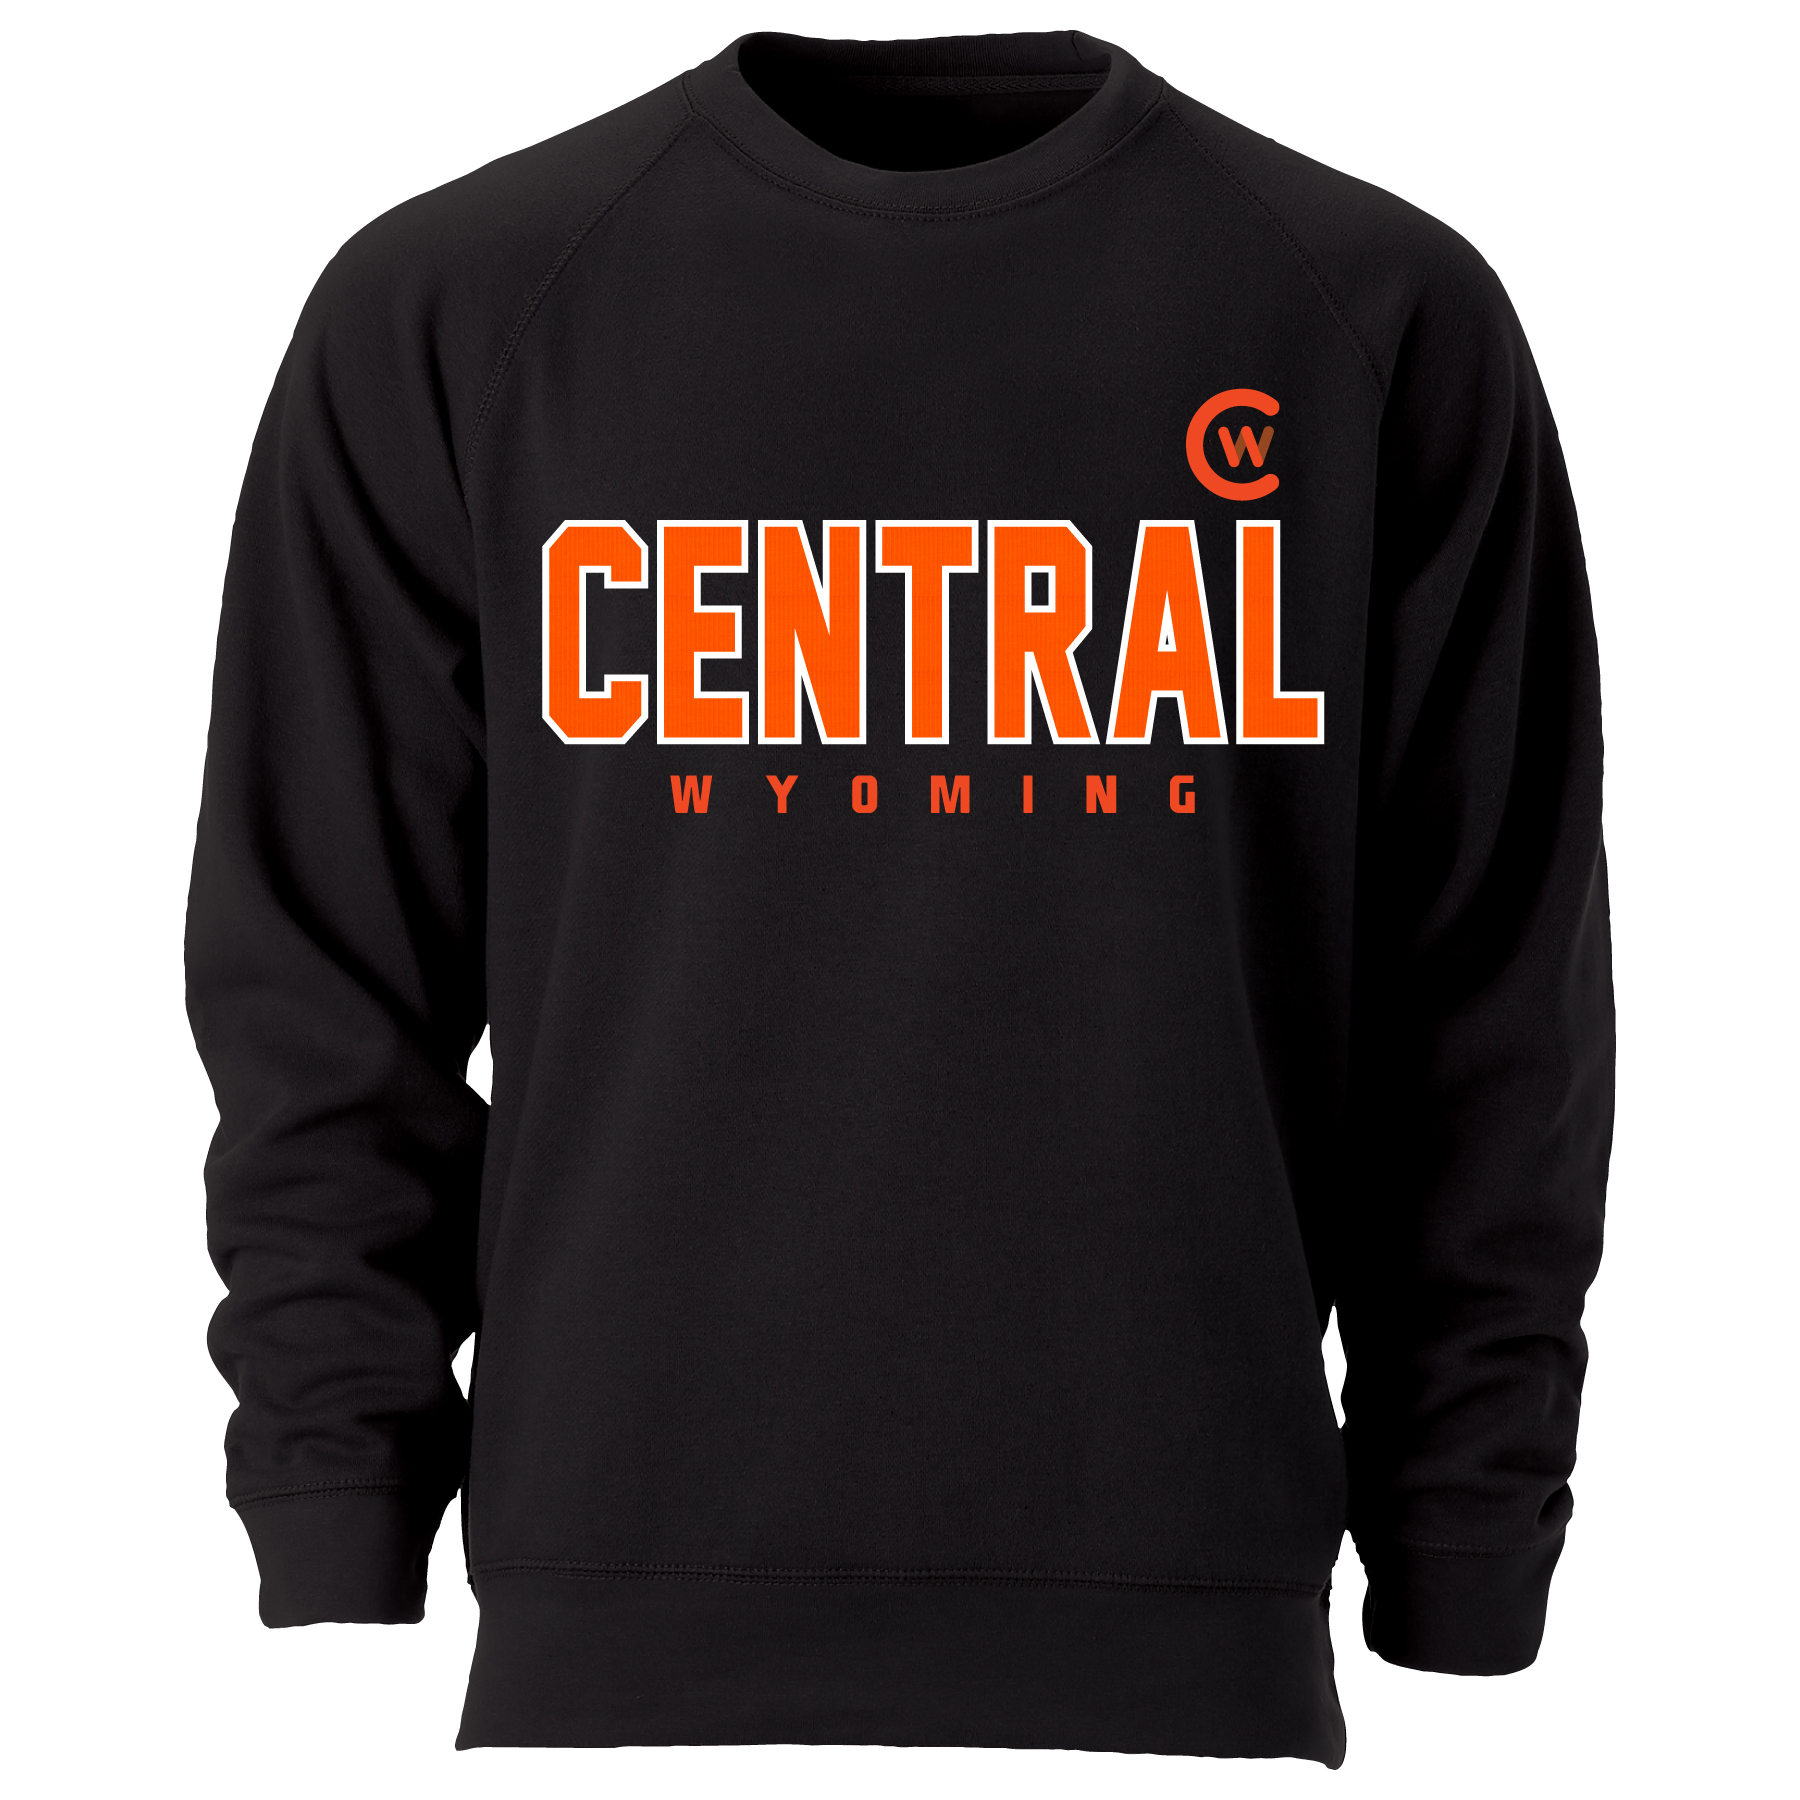 Benchmark Crew Central Sweatshirt